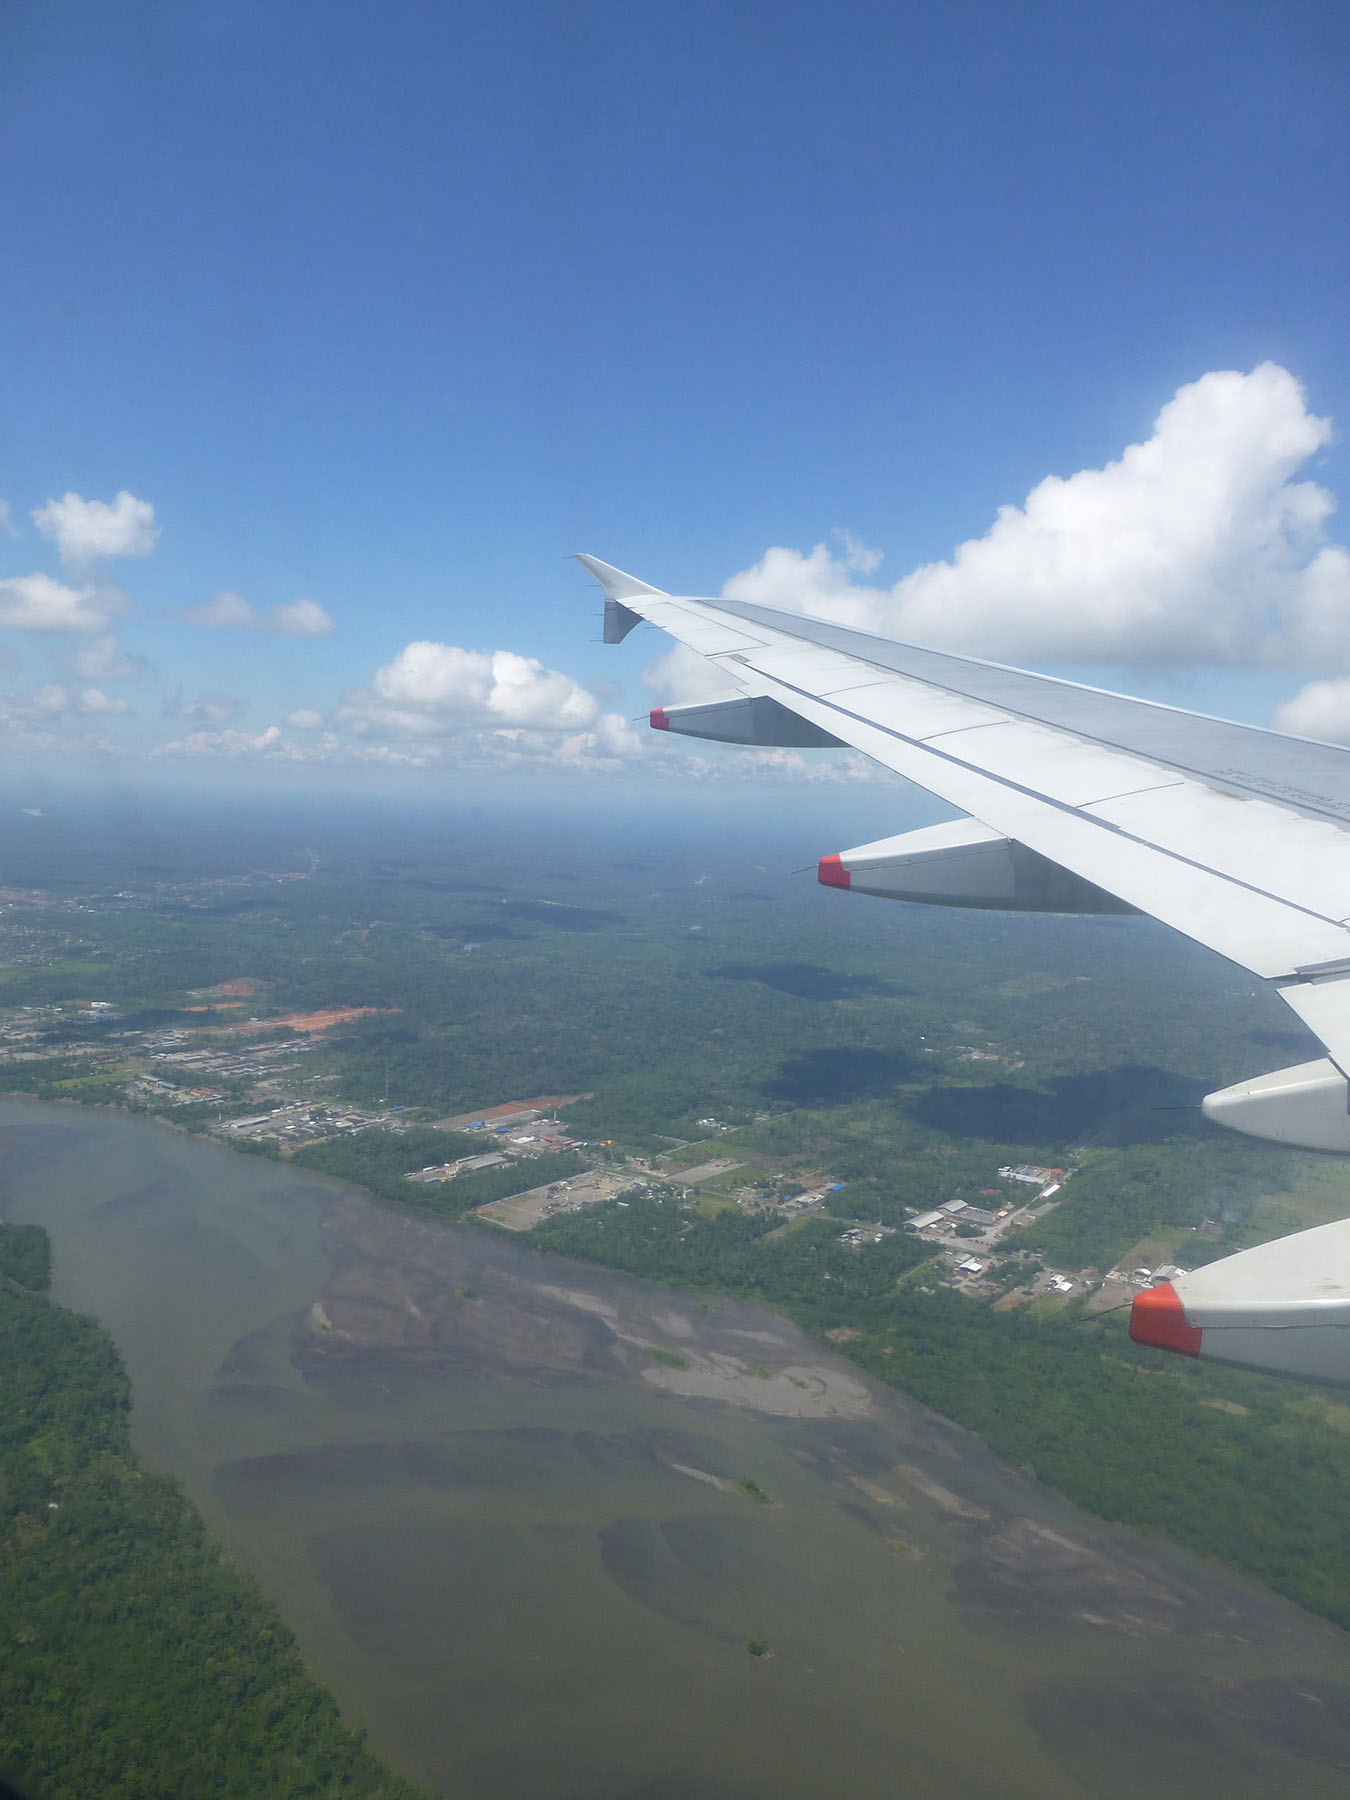 Flying into Coca from Quito. The Napo River flows below us.